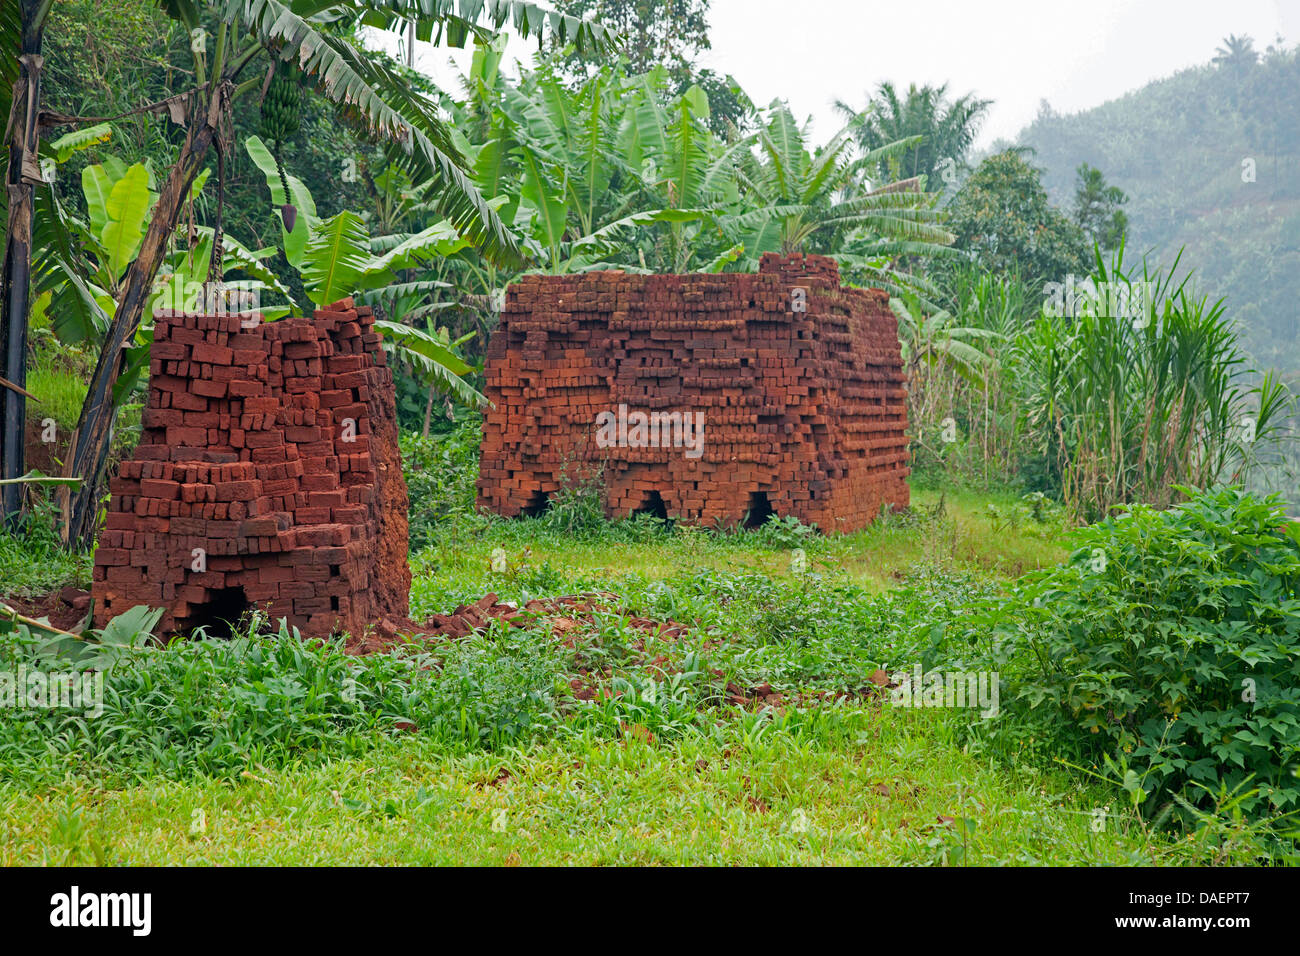 piles of mud bricks, Burundi, Bujumbura - Stock Image